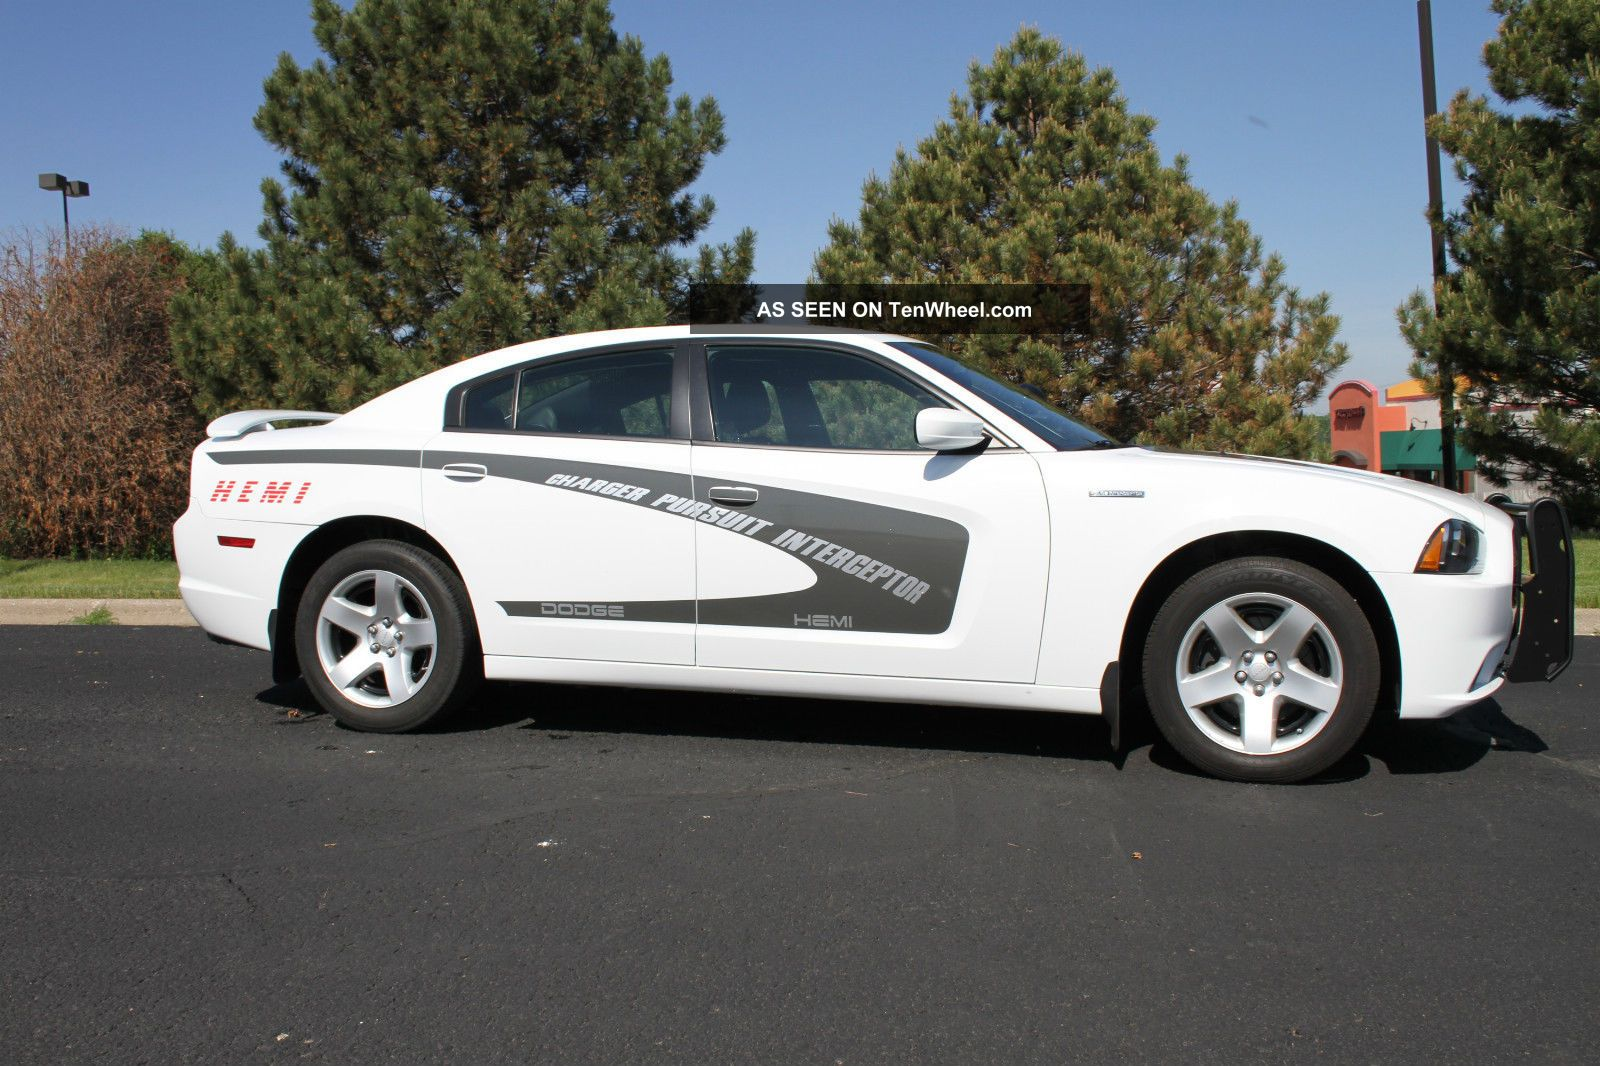 2011 dodge charger police pursuit interceptor hemi 5 7 liter. Cars Review. Best American Auto & Cars Review